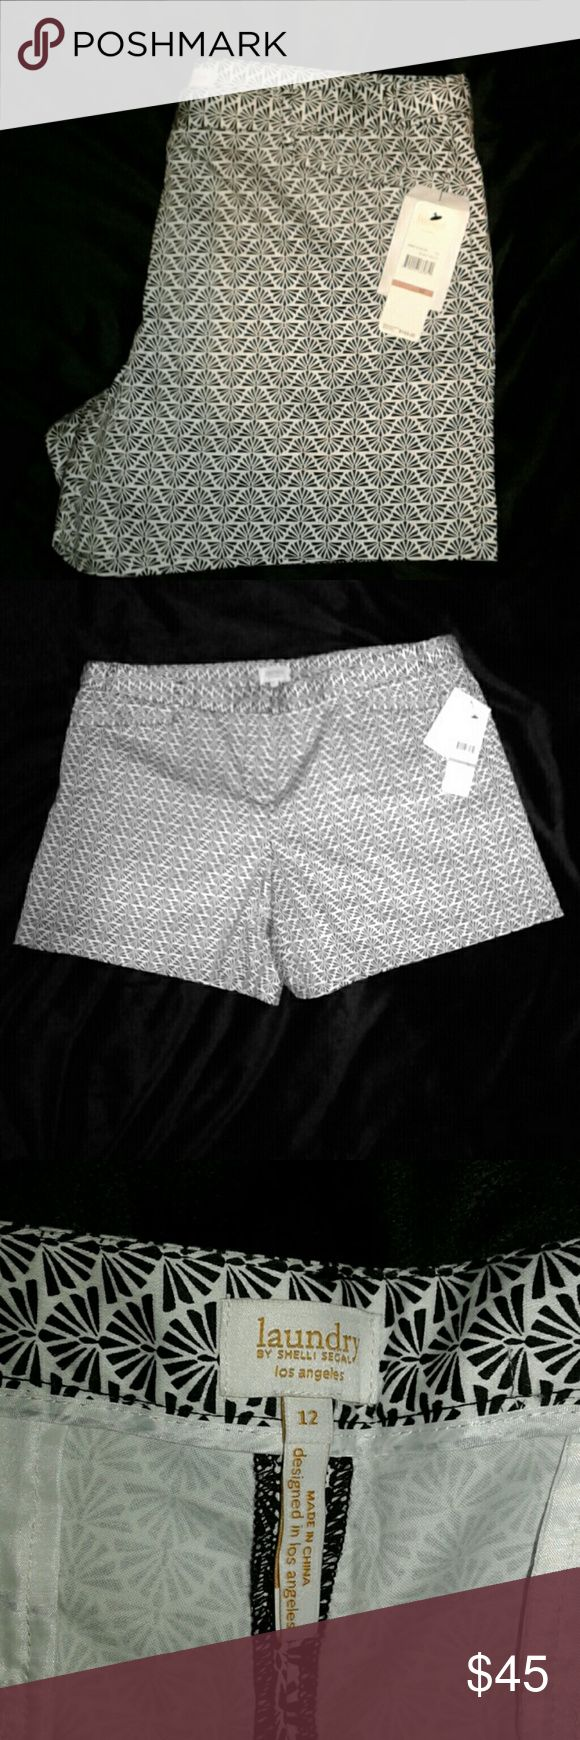 NWT laundry by Shelli Segal shorts NWT size 12 black and white design, laundry by Shelli Segal. Original price 169.00. Laundry by Shelli Segal Shorts